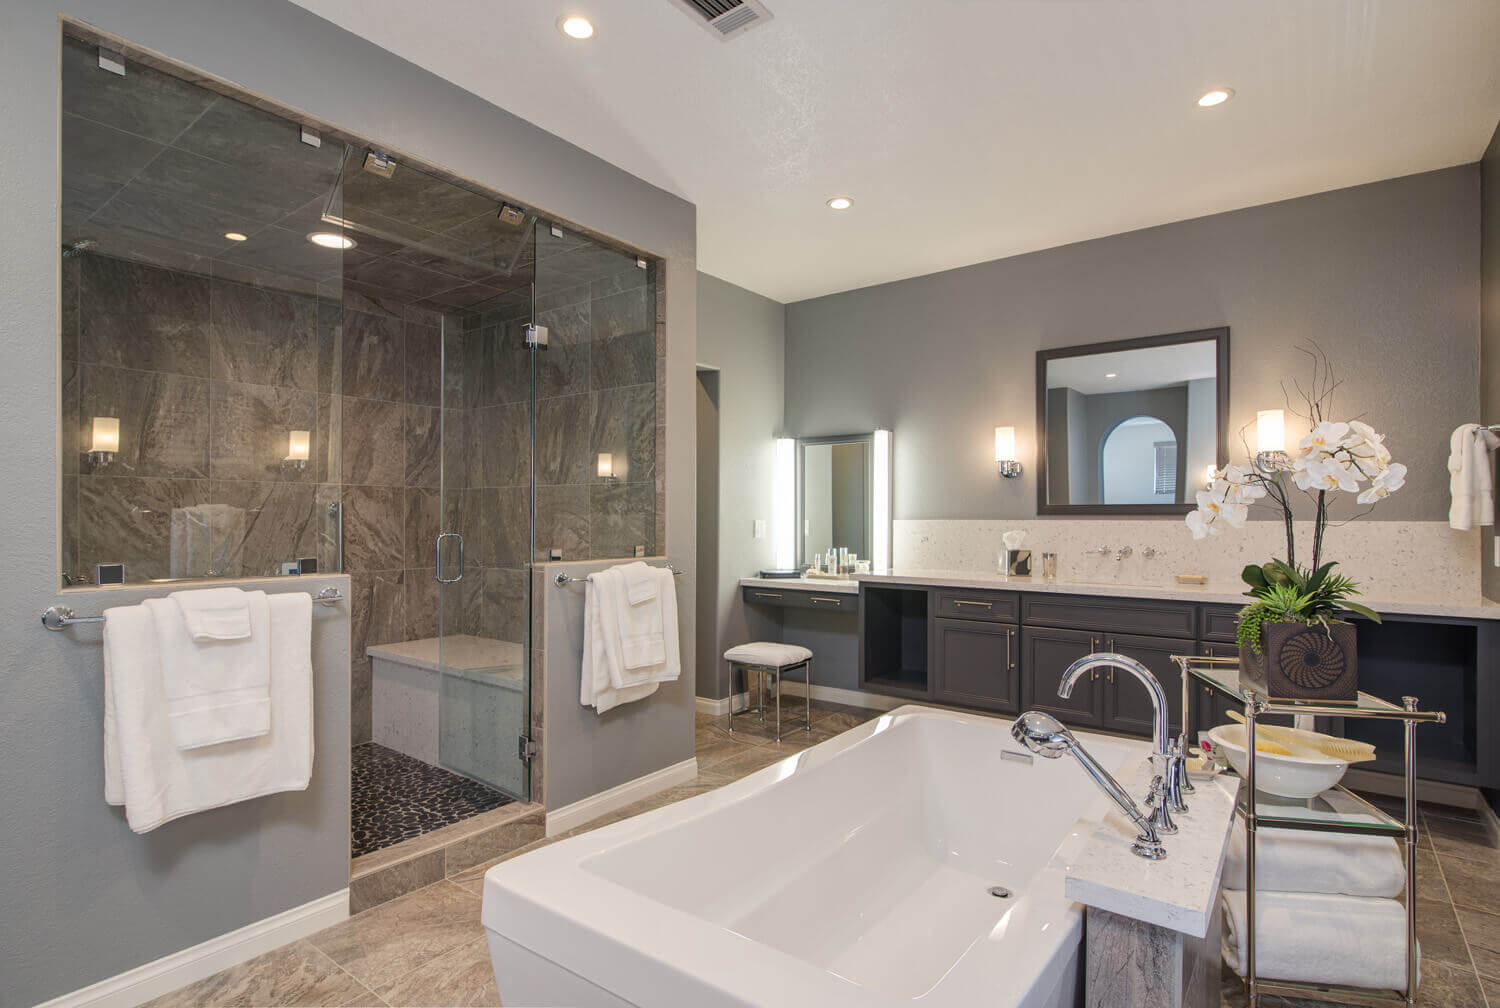 2018 bathroom renovation cost get prices for the most - How to layout a bathroom remodel ...